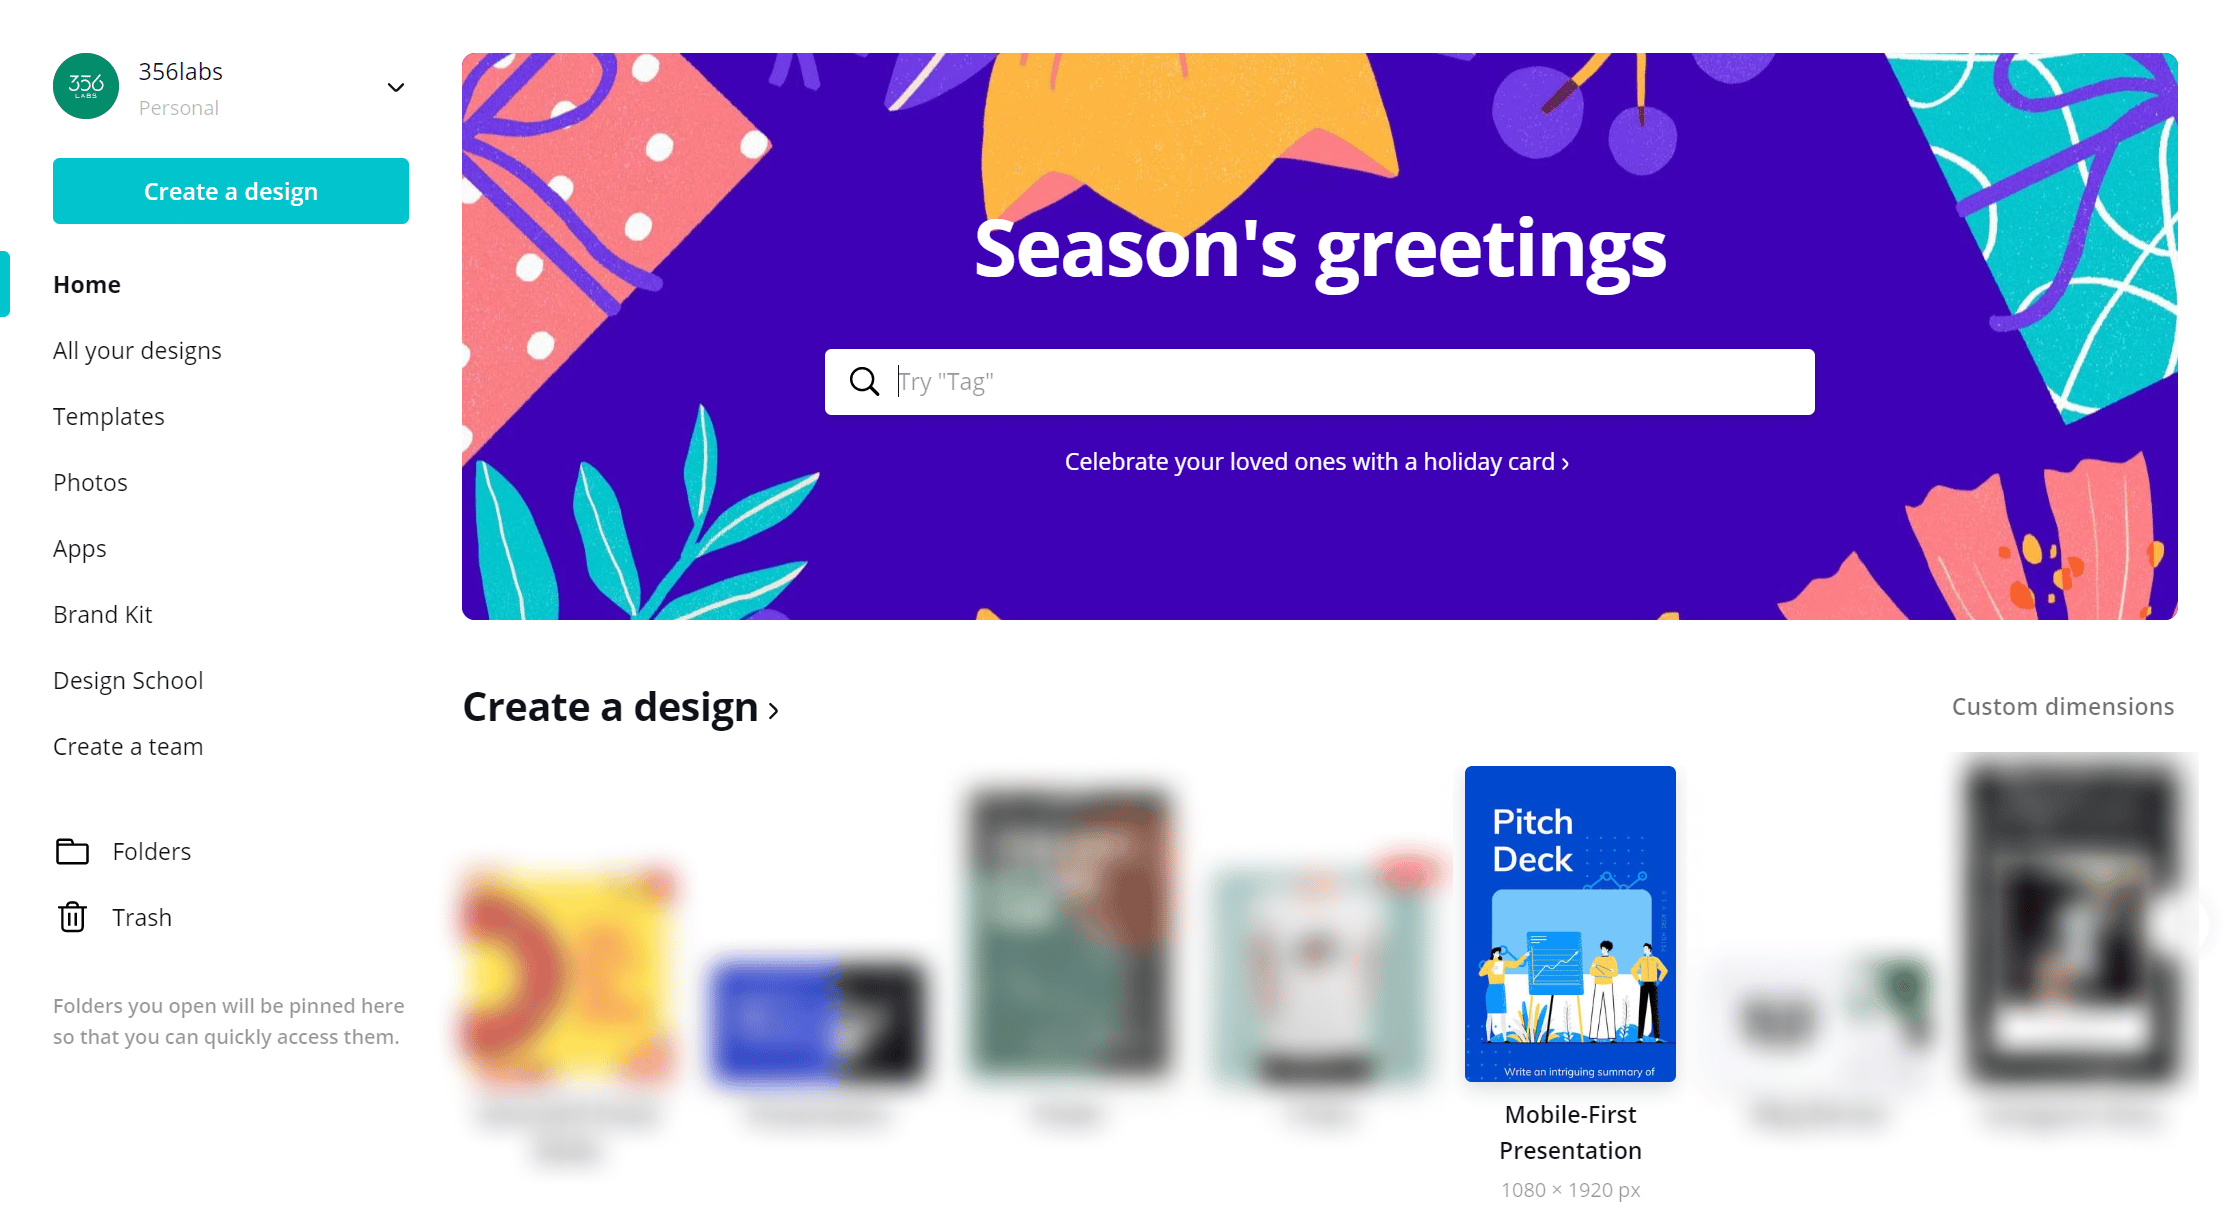 Mobile First Presentations in Canva